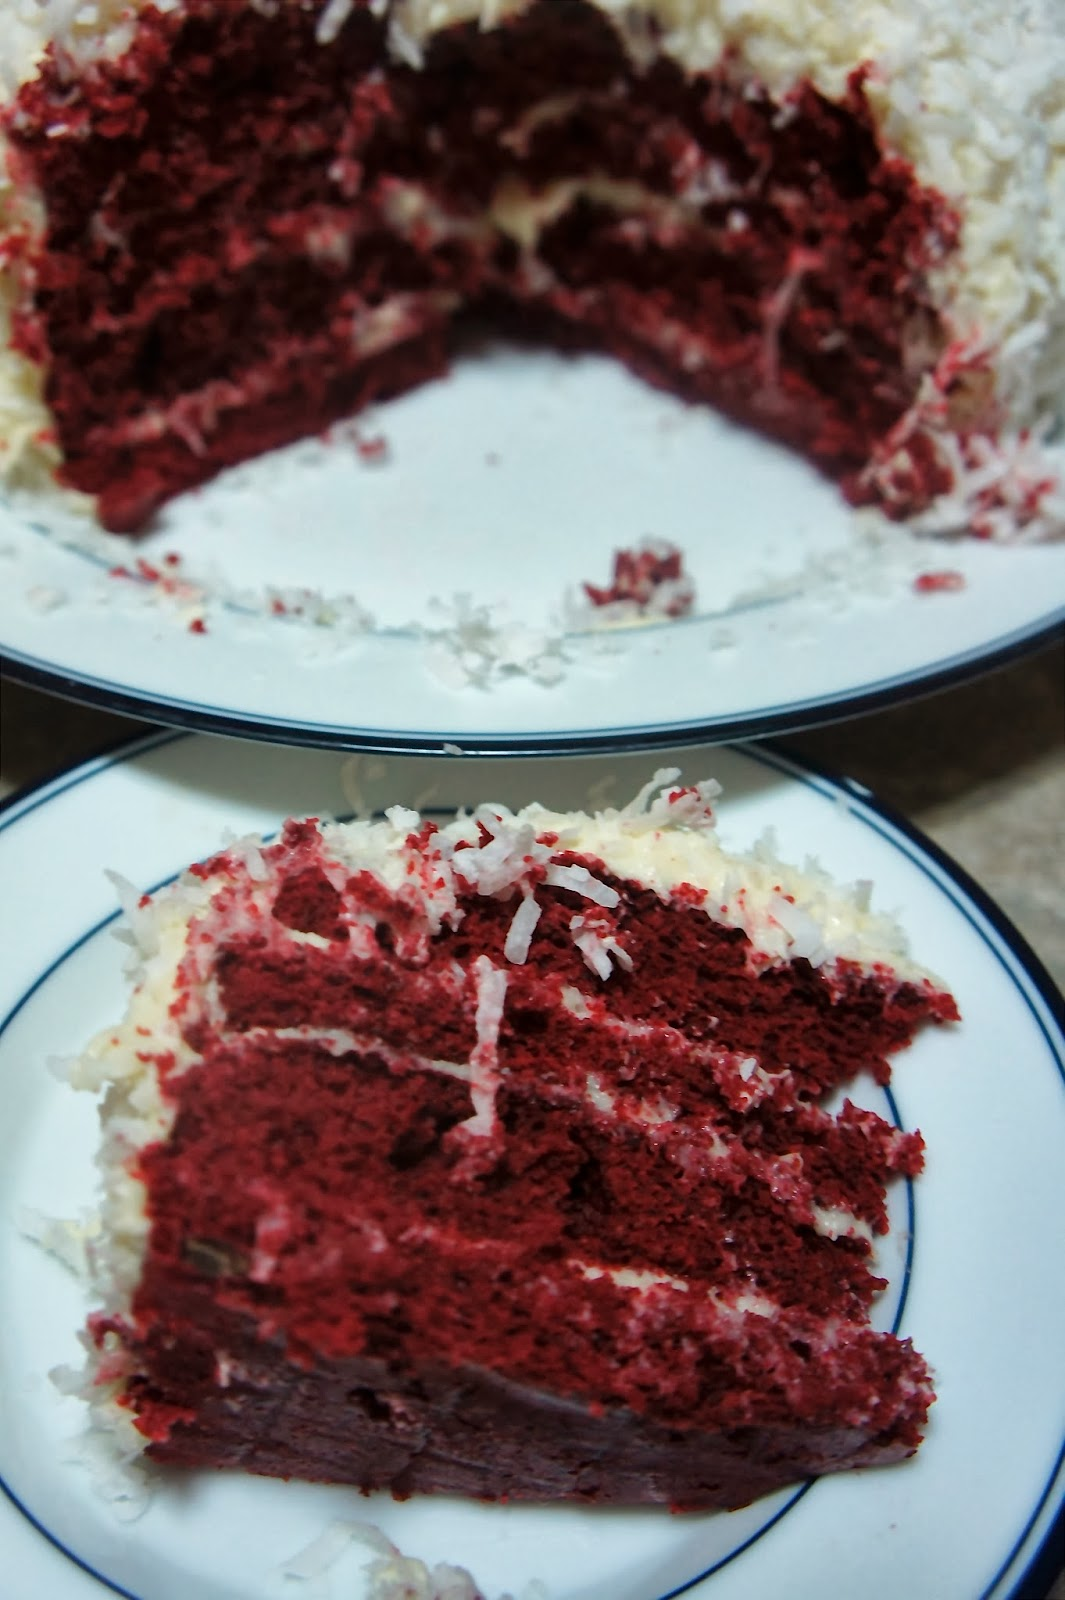 Savory Sweet and Satisfying: Red Velvet Snowball Cake